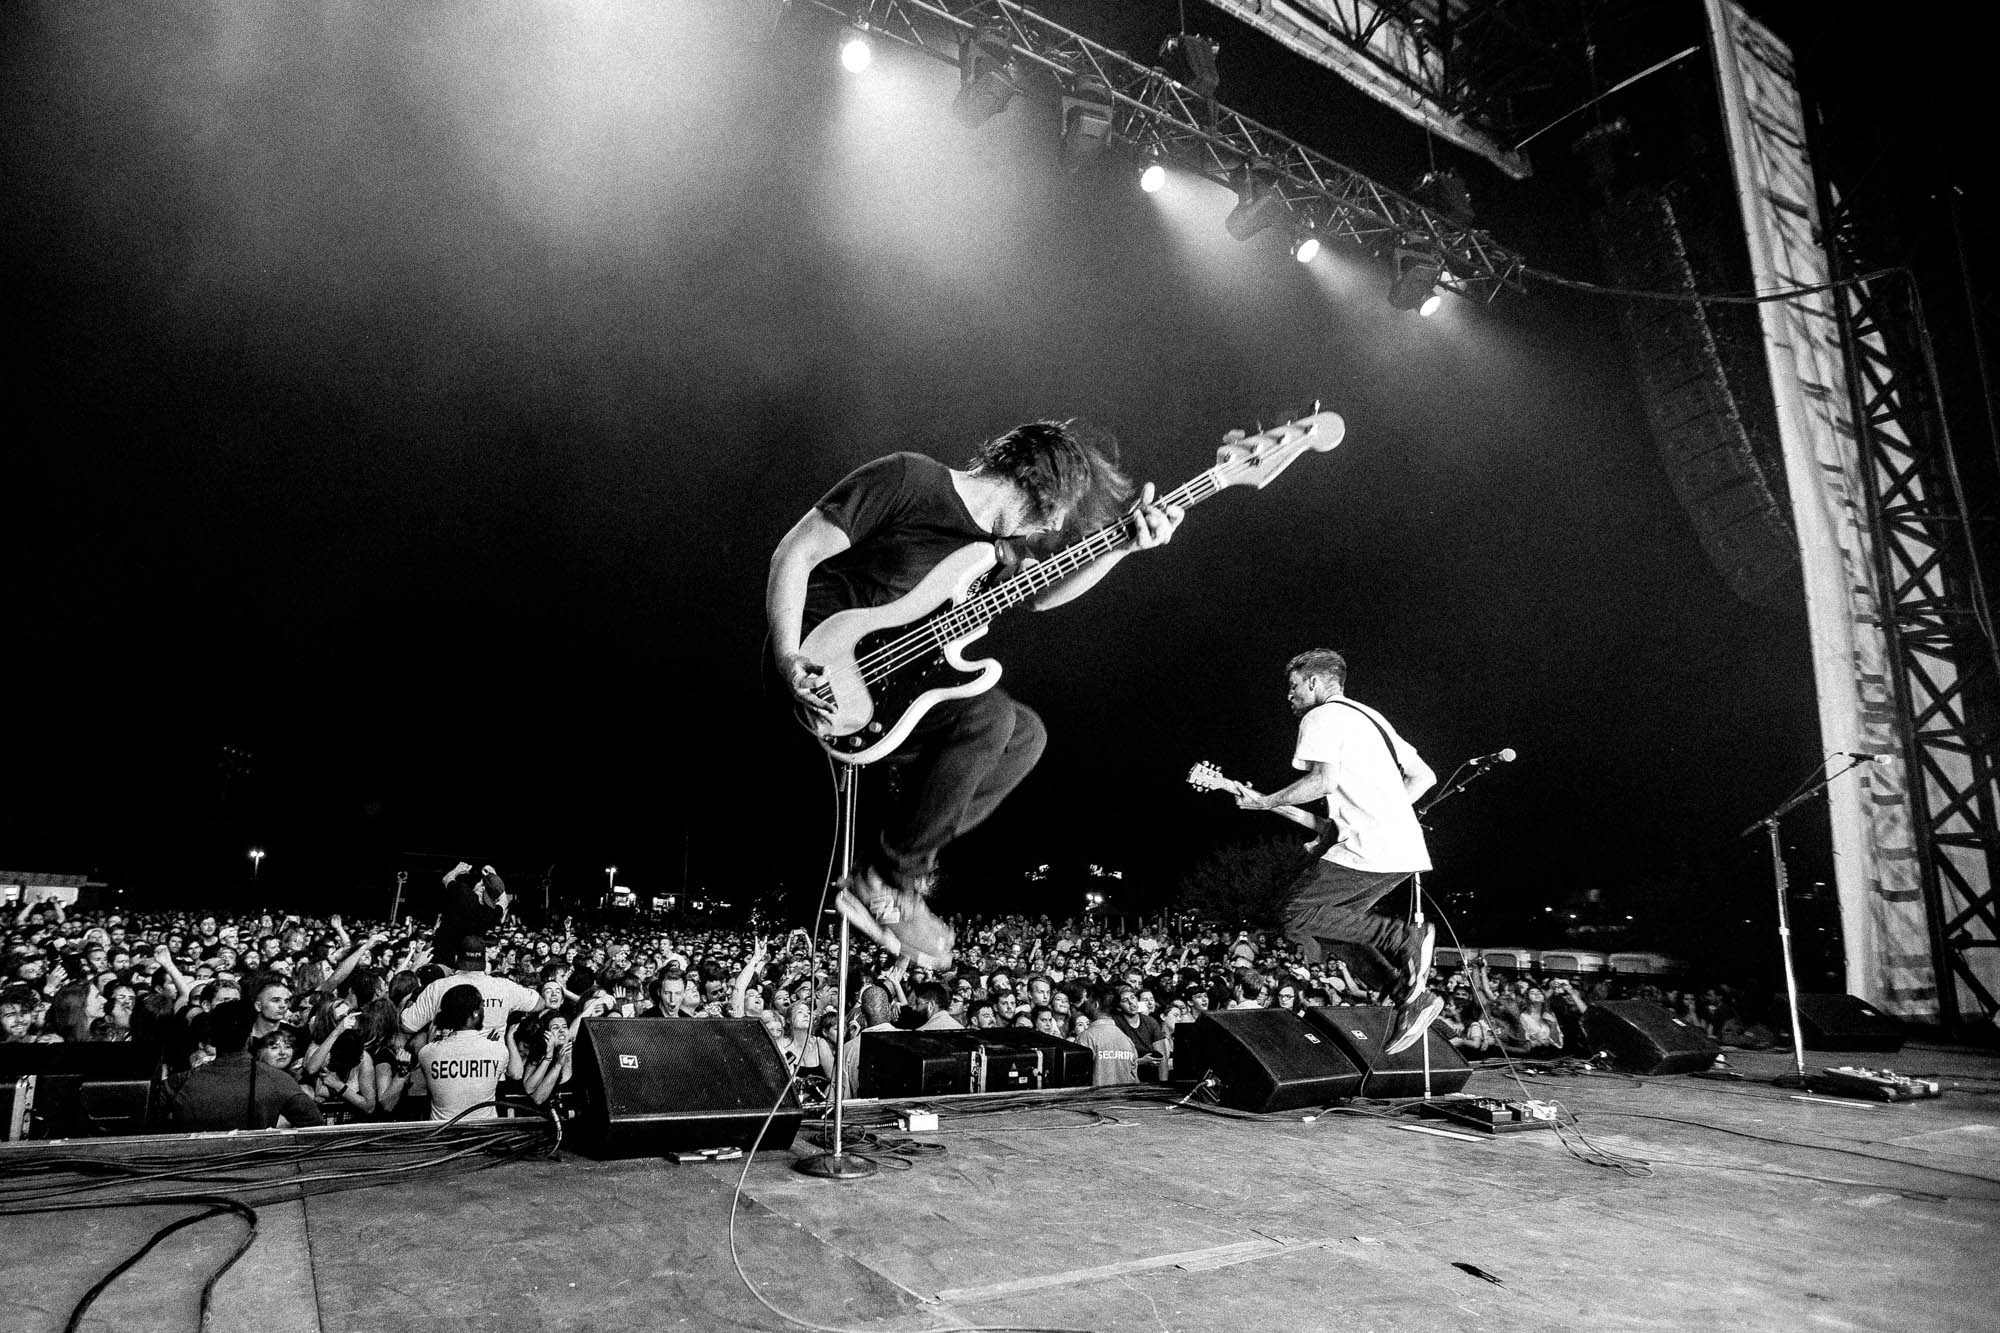 Two men are on stage in front of a large crowd. They are both caught by the camera mid-jump while holding their guitars.